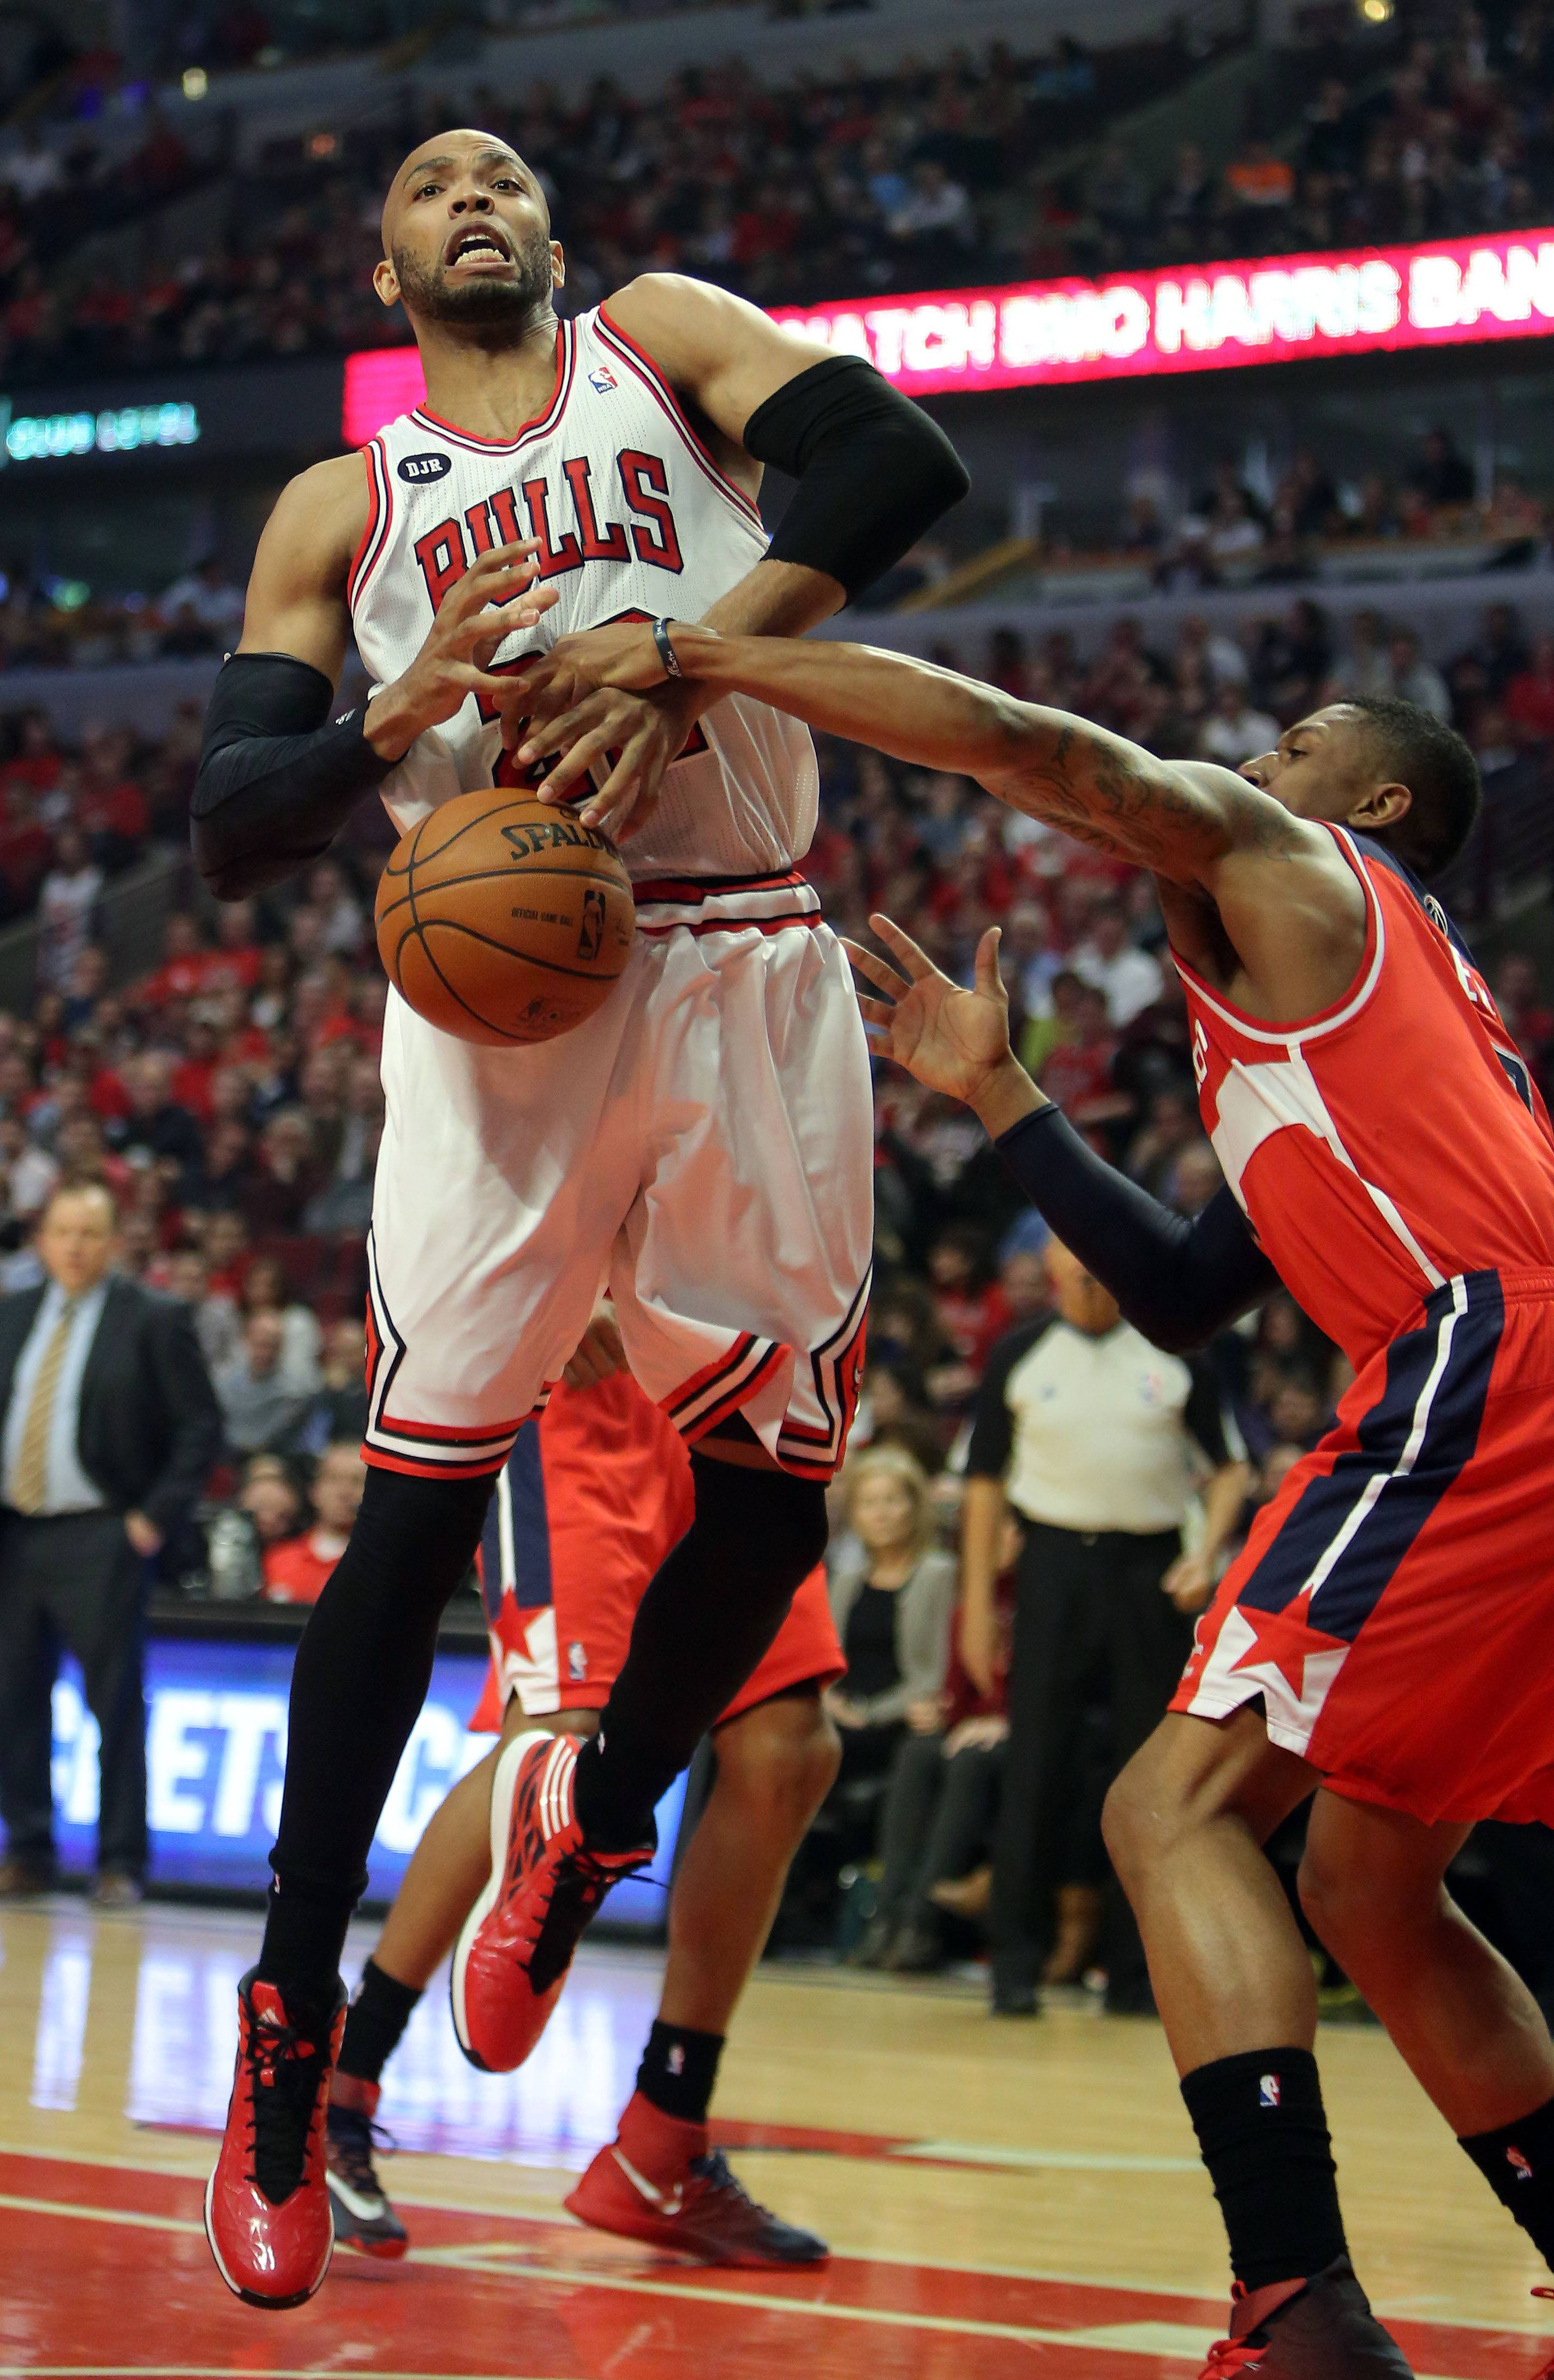 Chicago Bulls forward Taj Gibson gets the ball stripped by Washington Wizards guard John Wall.